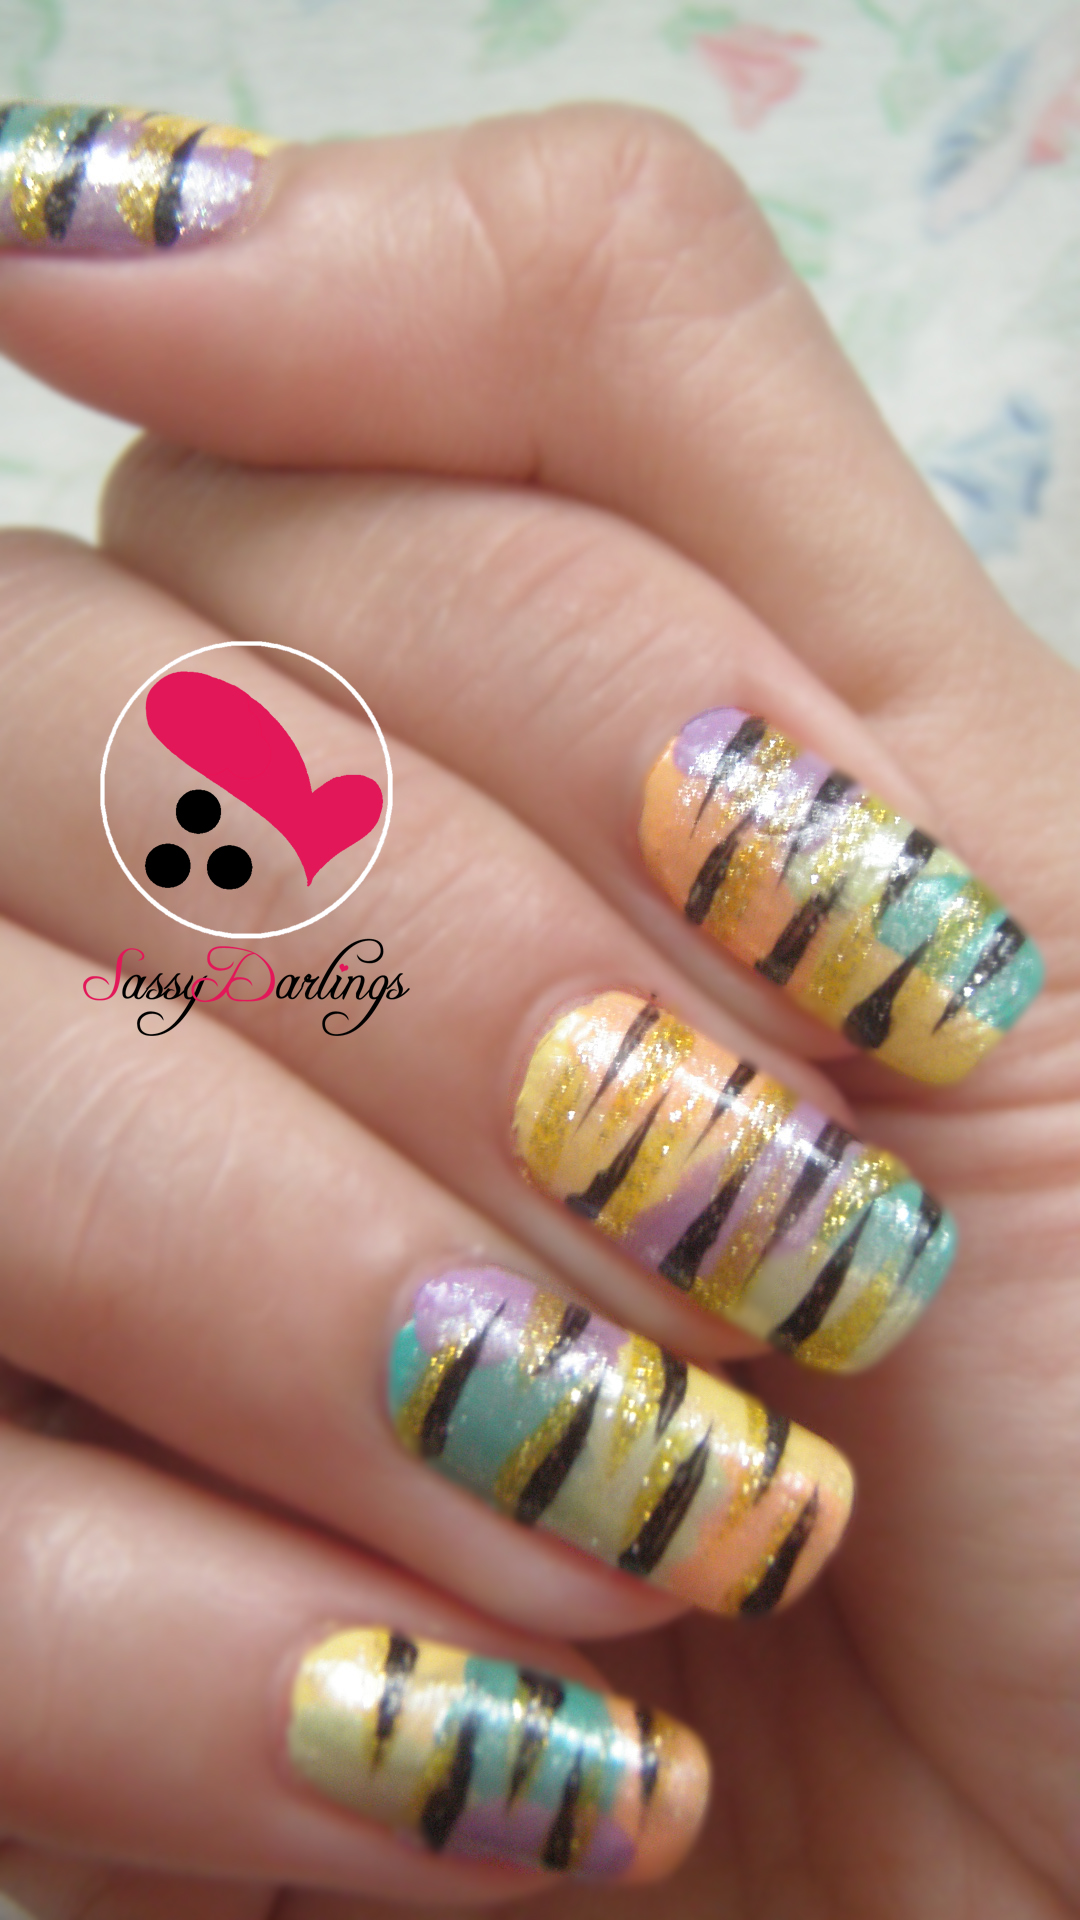 Nail Art Designs And Nail Polishes For French Manicure: Colorful Zebra Print Nail Art Tutorial